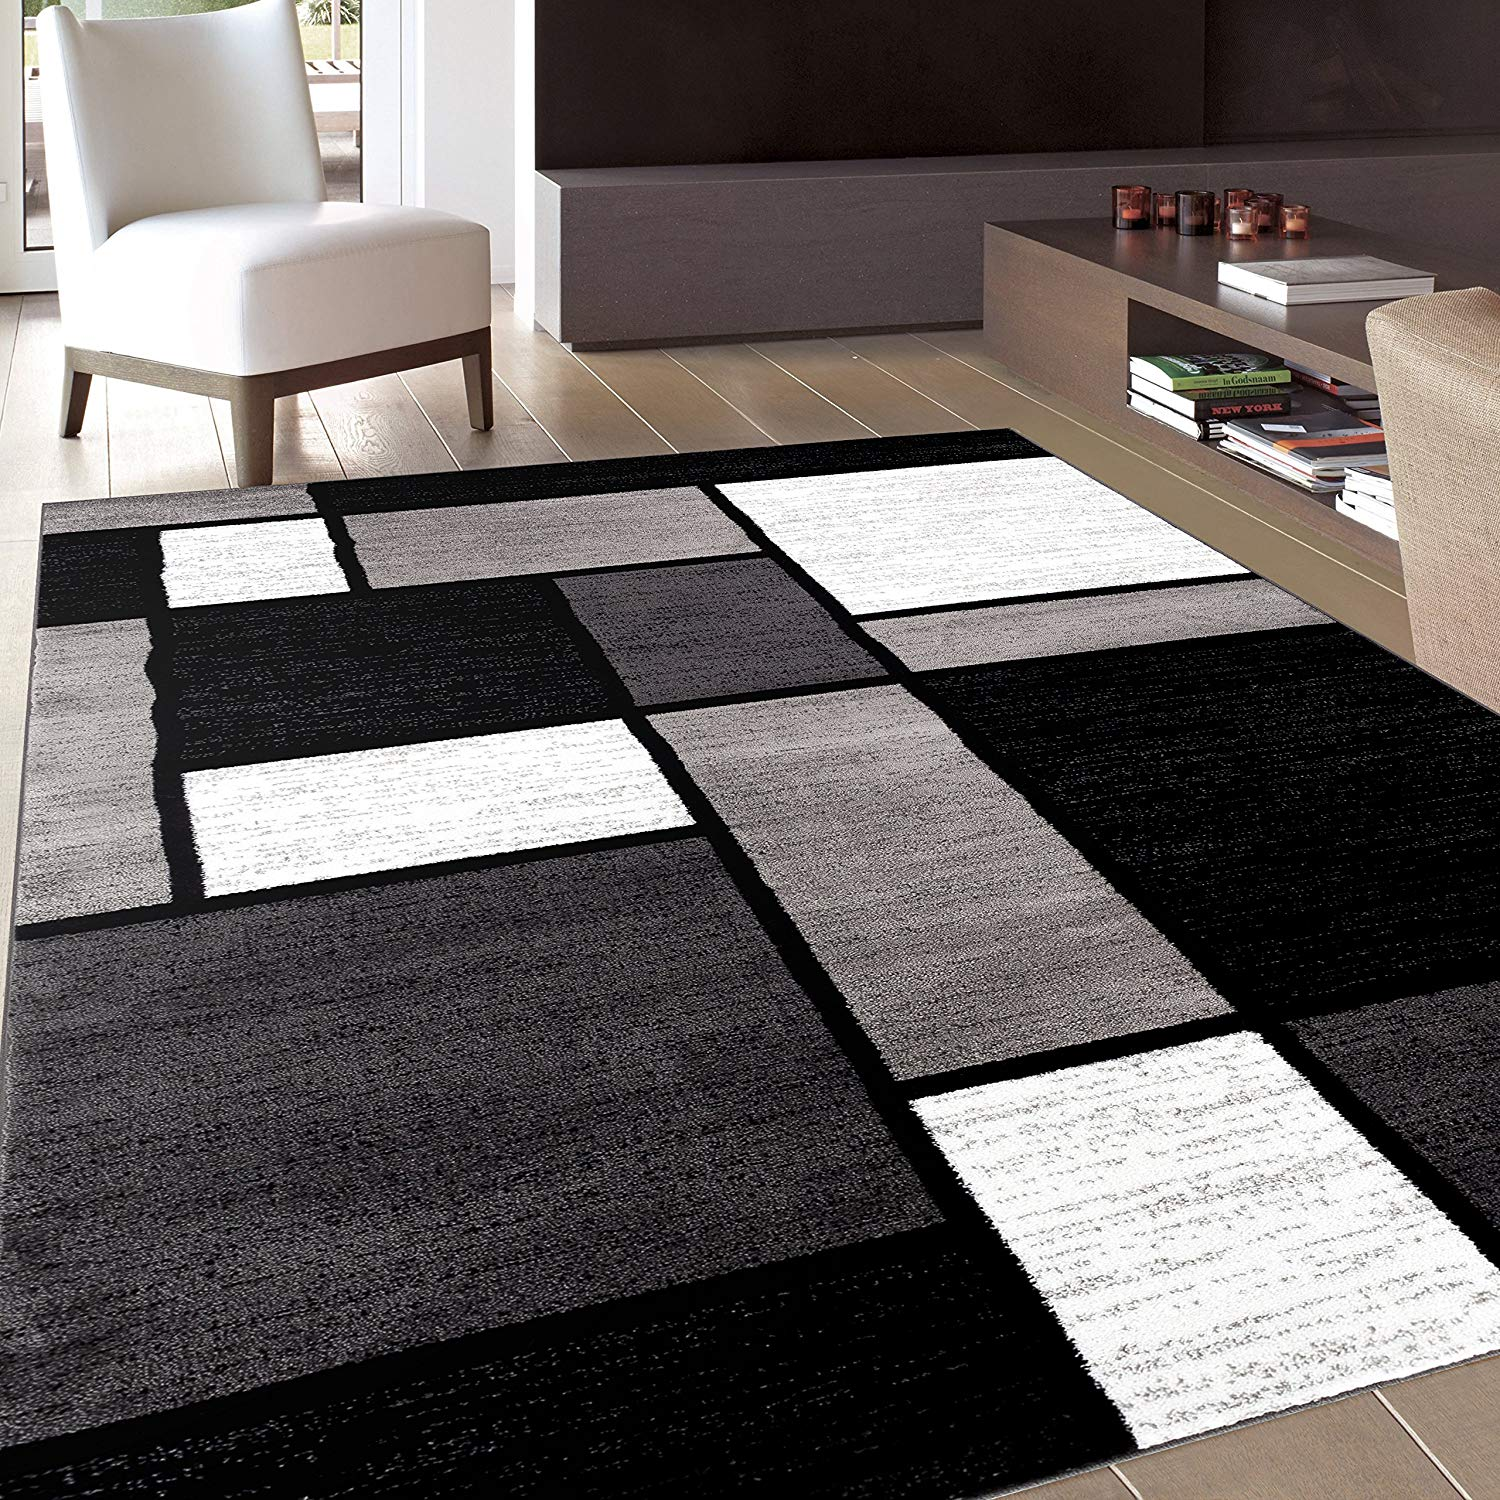 indoor rugs amazon.com: rug decor contemporary modern boxes area rug, 5u0027 3 PXFLCAT